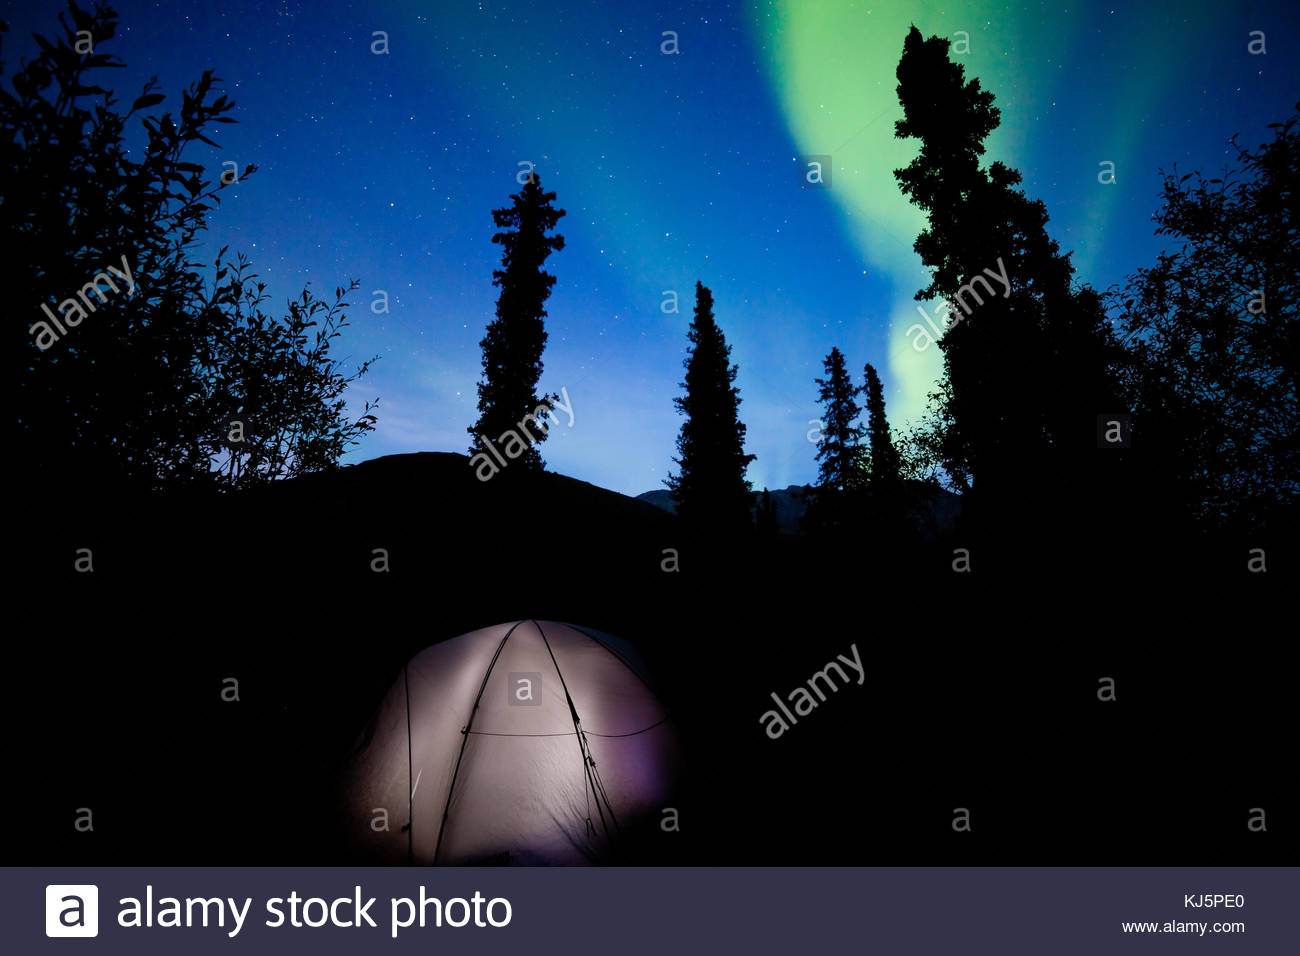 Camping unter Northern lights Stockbild